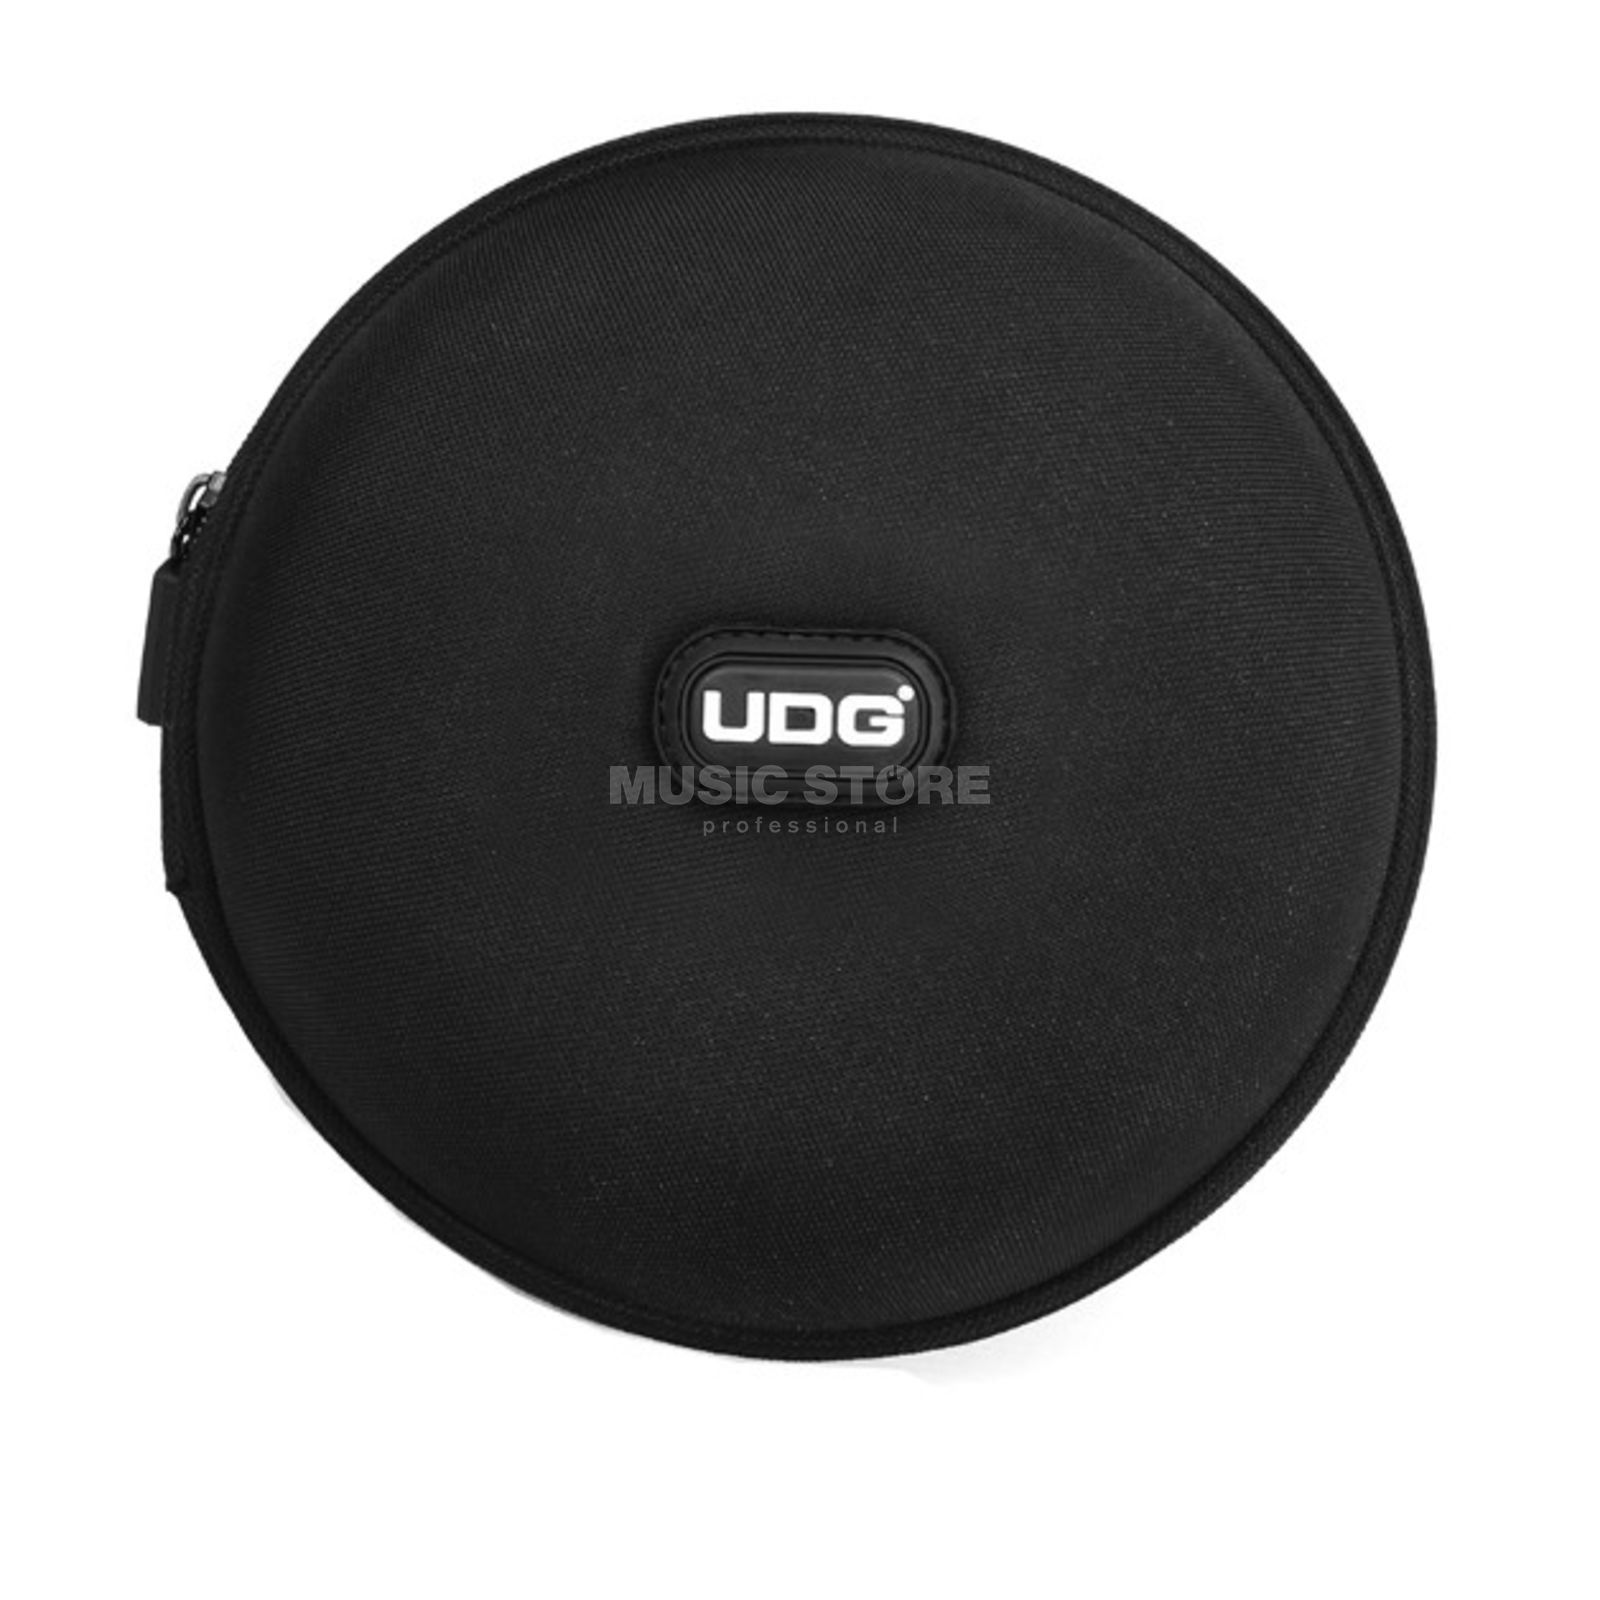 UDG Creator Headphone Case Small Black (U8201BL) Product Image